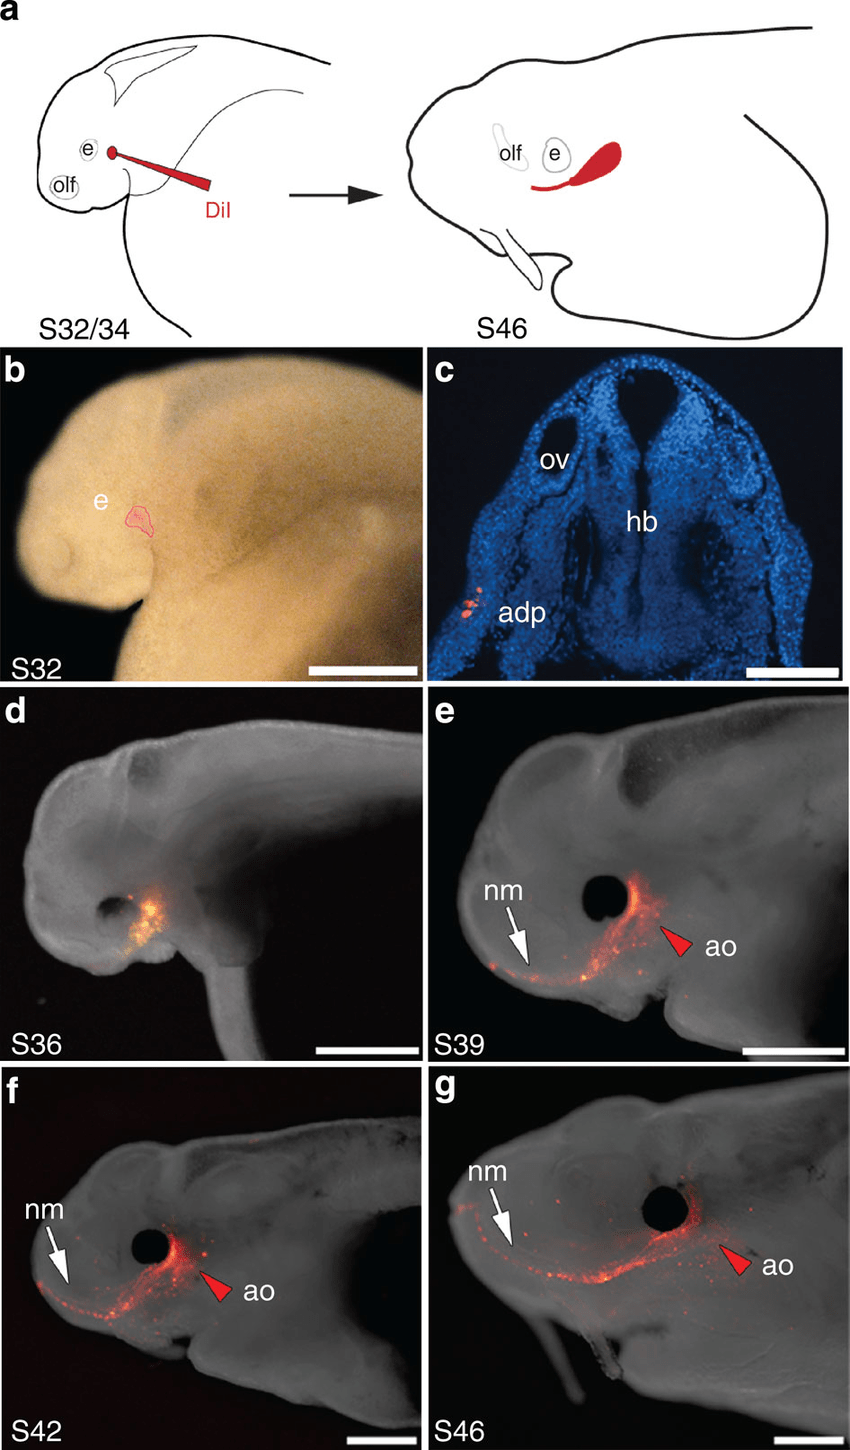 medium resolution of in vivo labelling of lateral line placodes a schematic of in vivo labelling